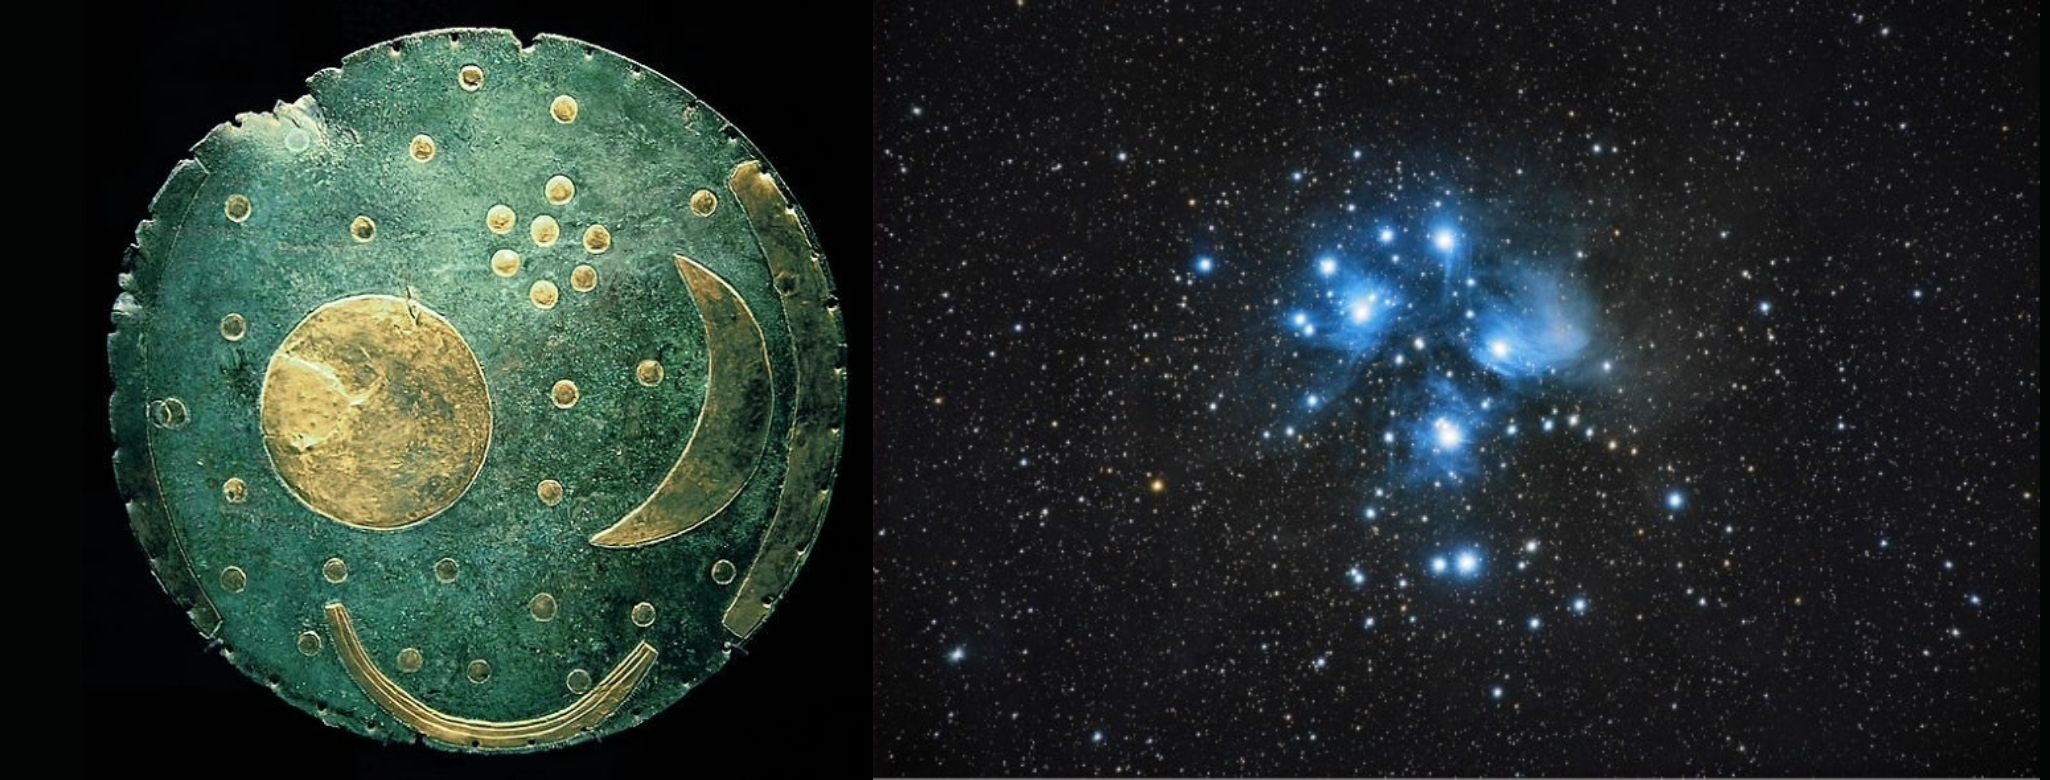 Nebra Sky Disc and Astronomy photo both showing the Pleiades